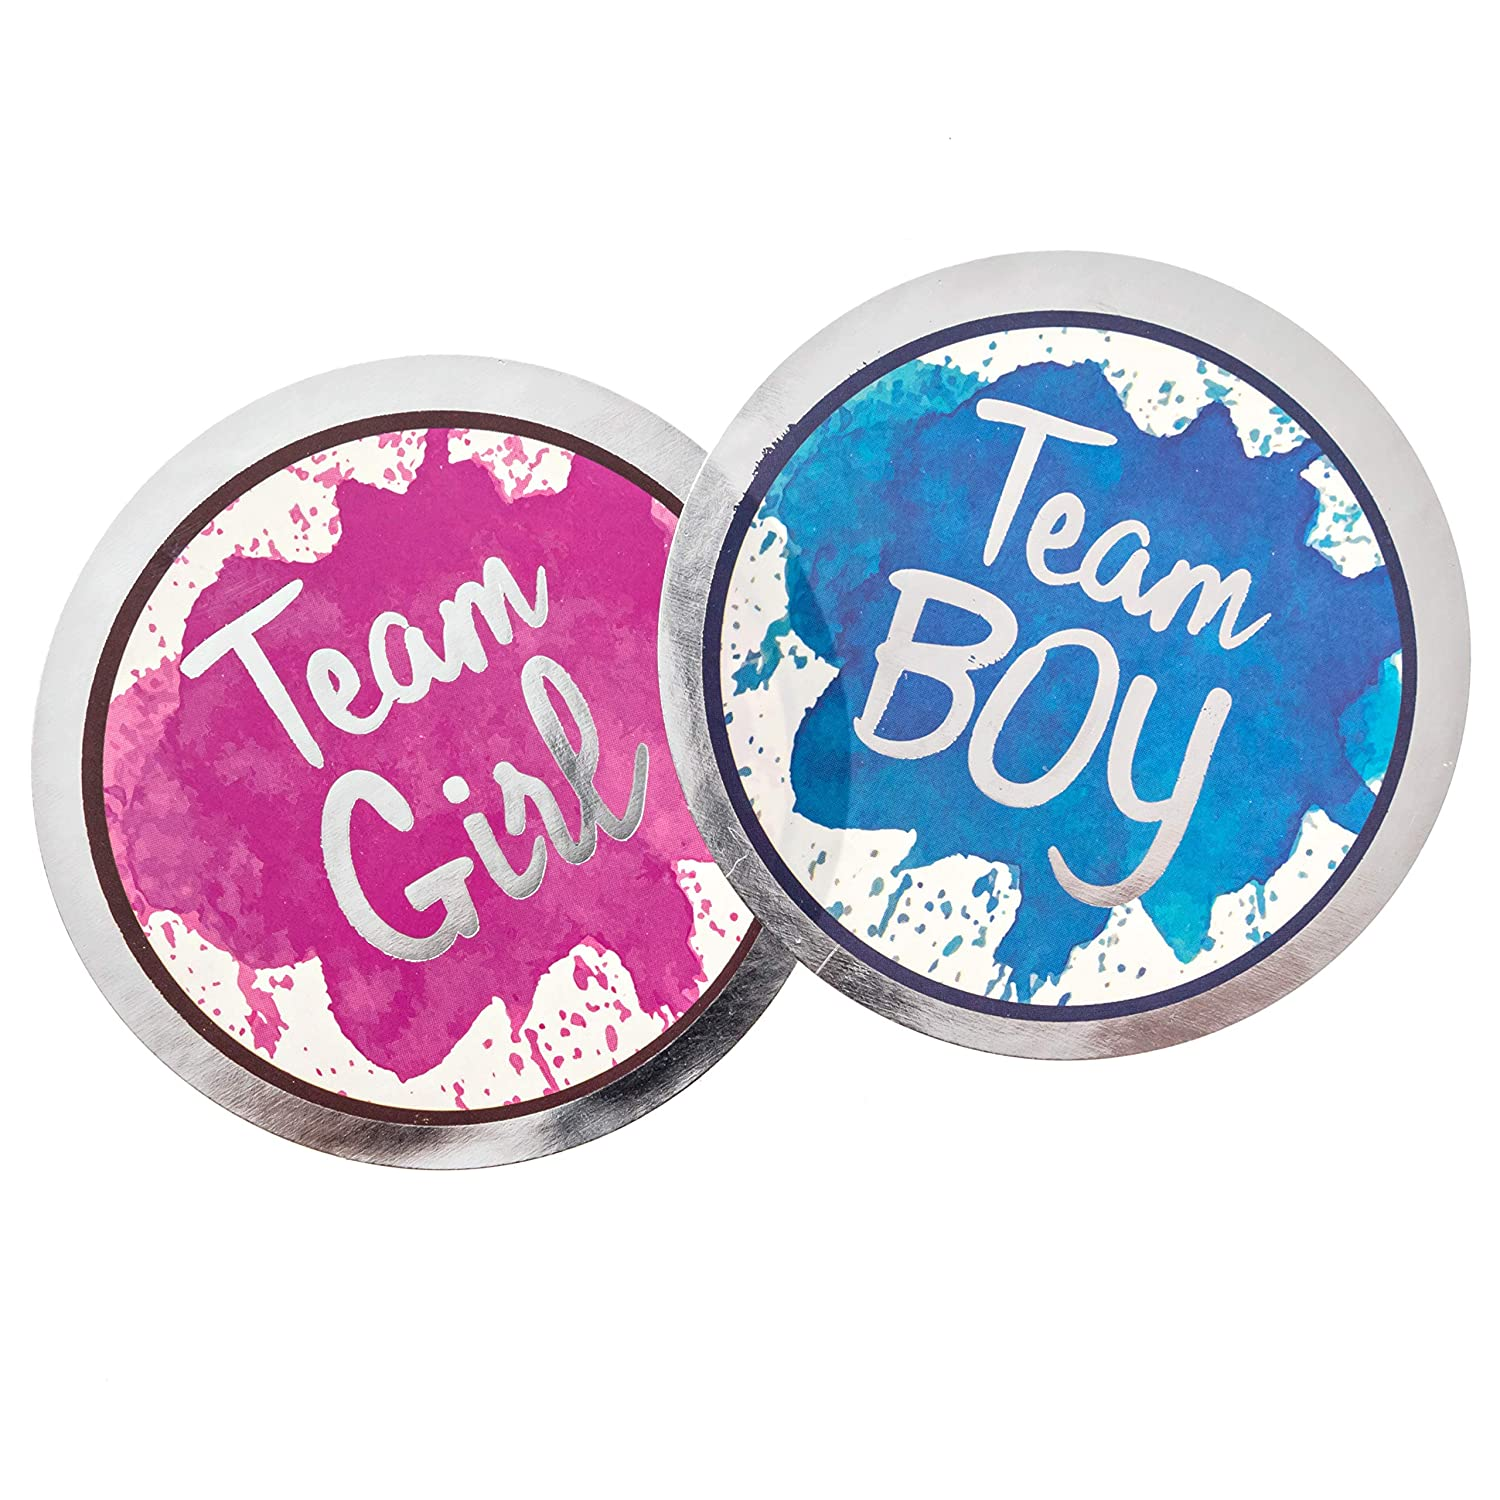 Gender Reveal Stickers 25 Pink + 25 Blue Team Boy and Team Girl Vote Stickers Decorations Ideas Baby Shower Party Supplies Pink /& Blue Sticker Set